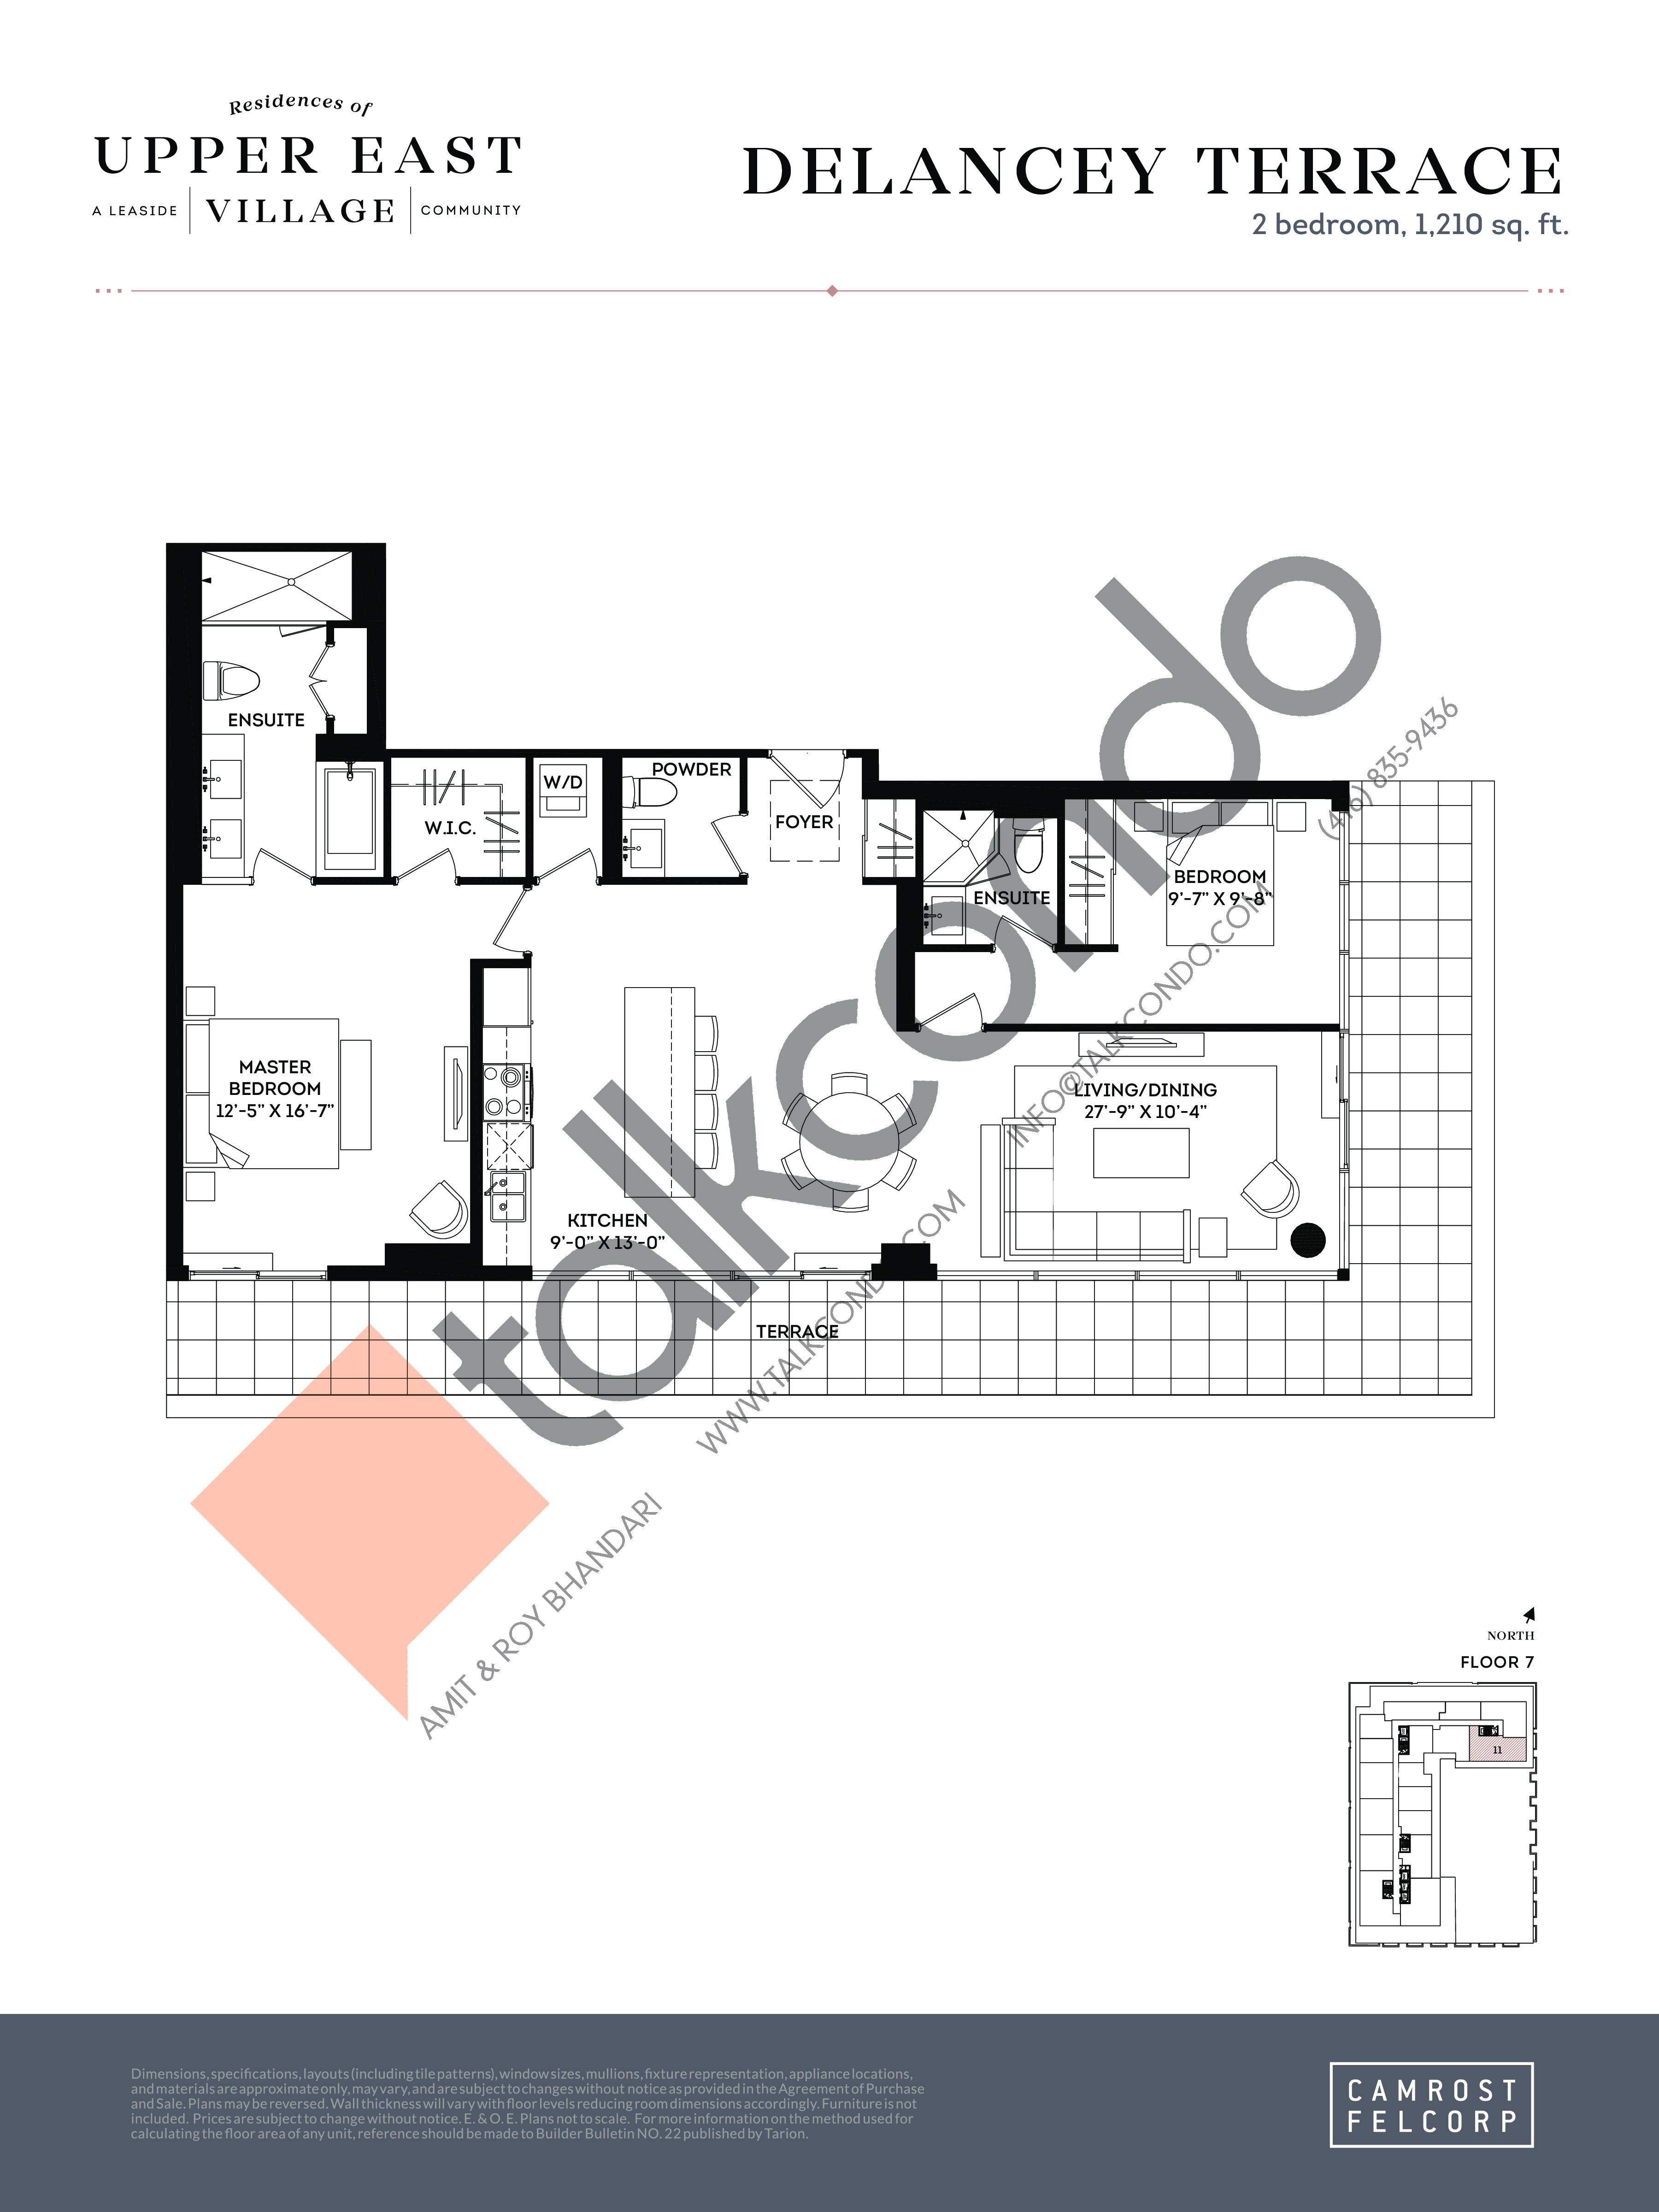 Delancey Terrace (Signature Collection) Floor Plan at Upper East Village Condos - 1210 sq.ft